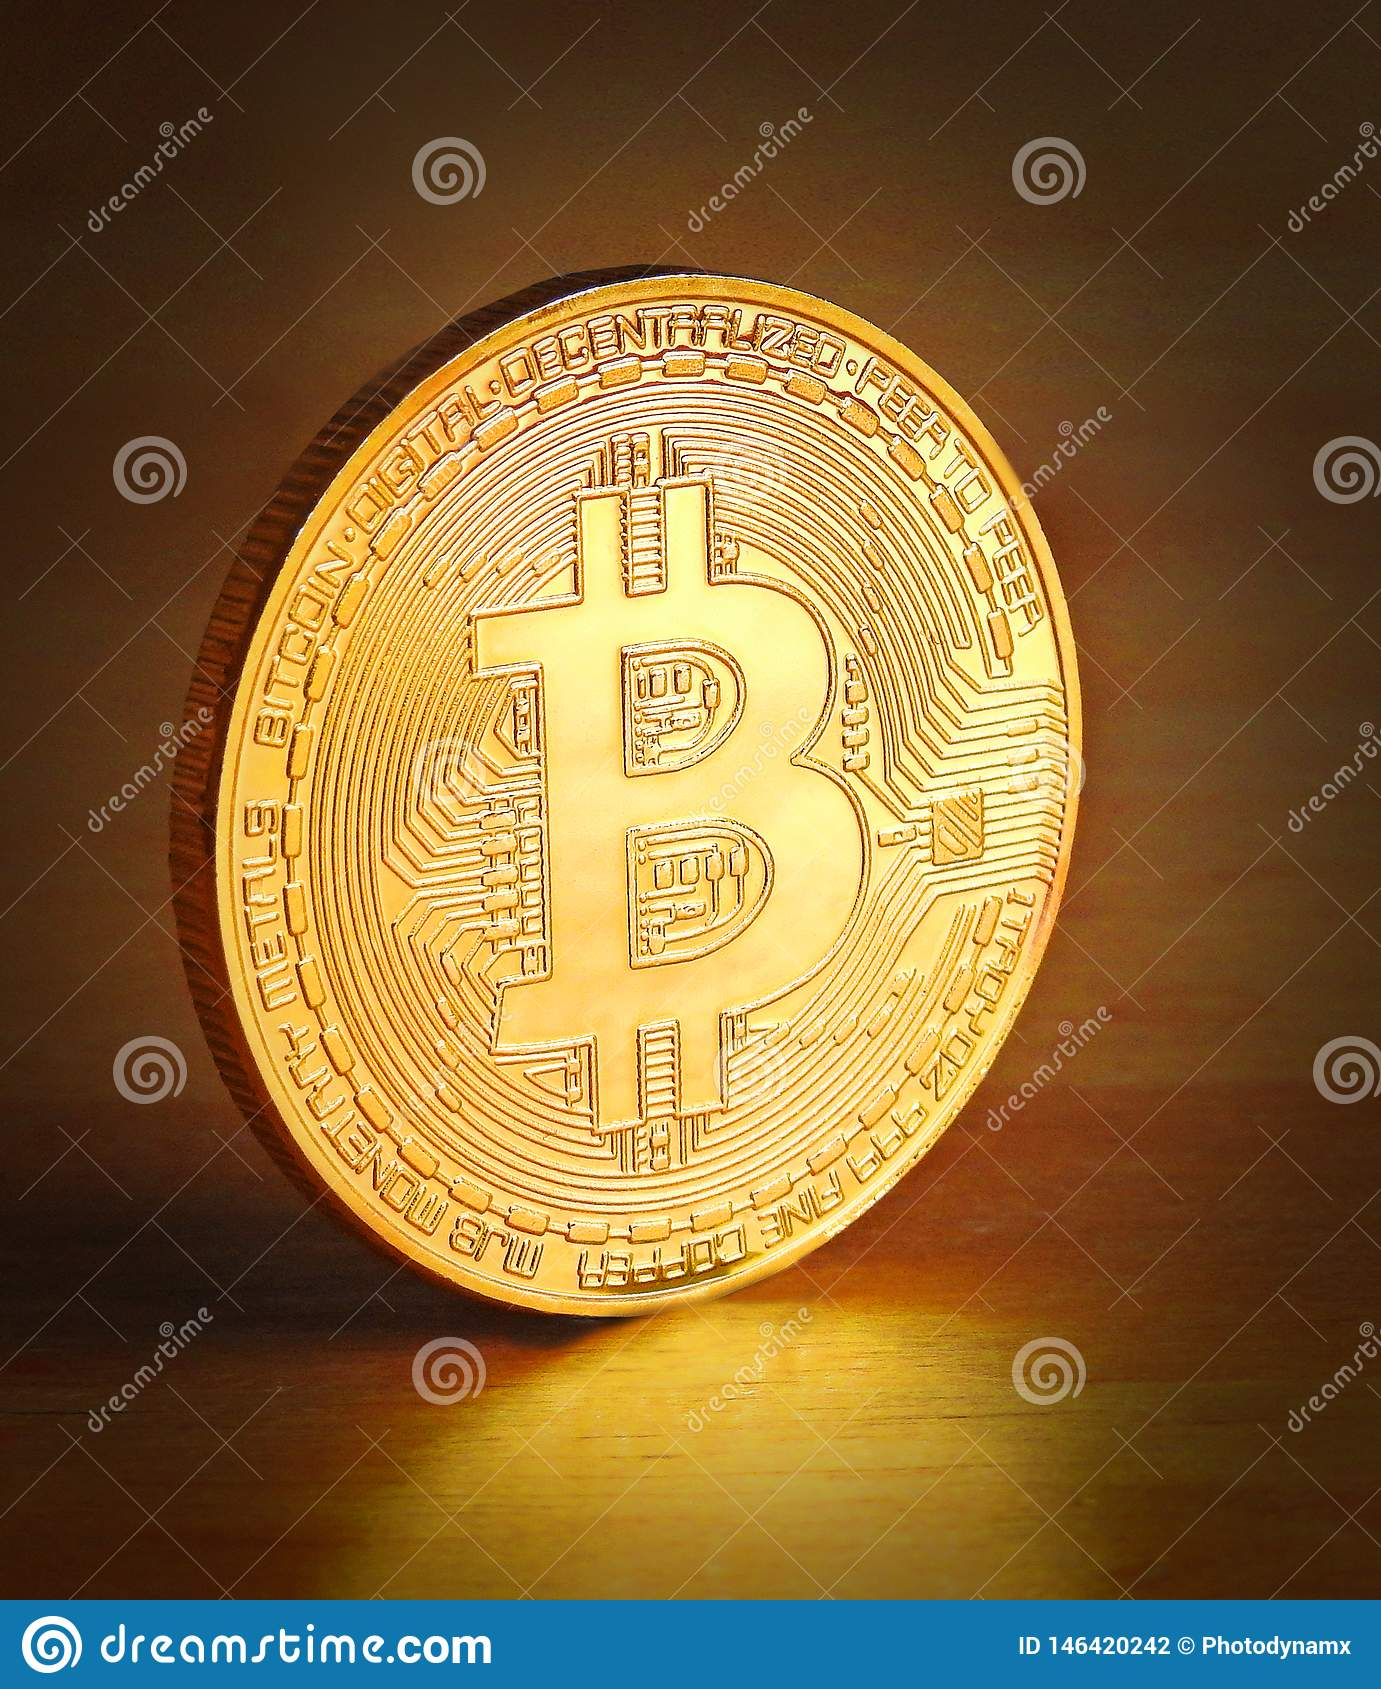 gold cryptocurrency coin